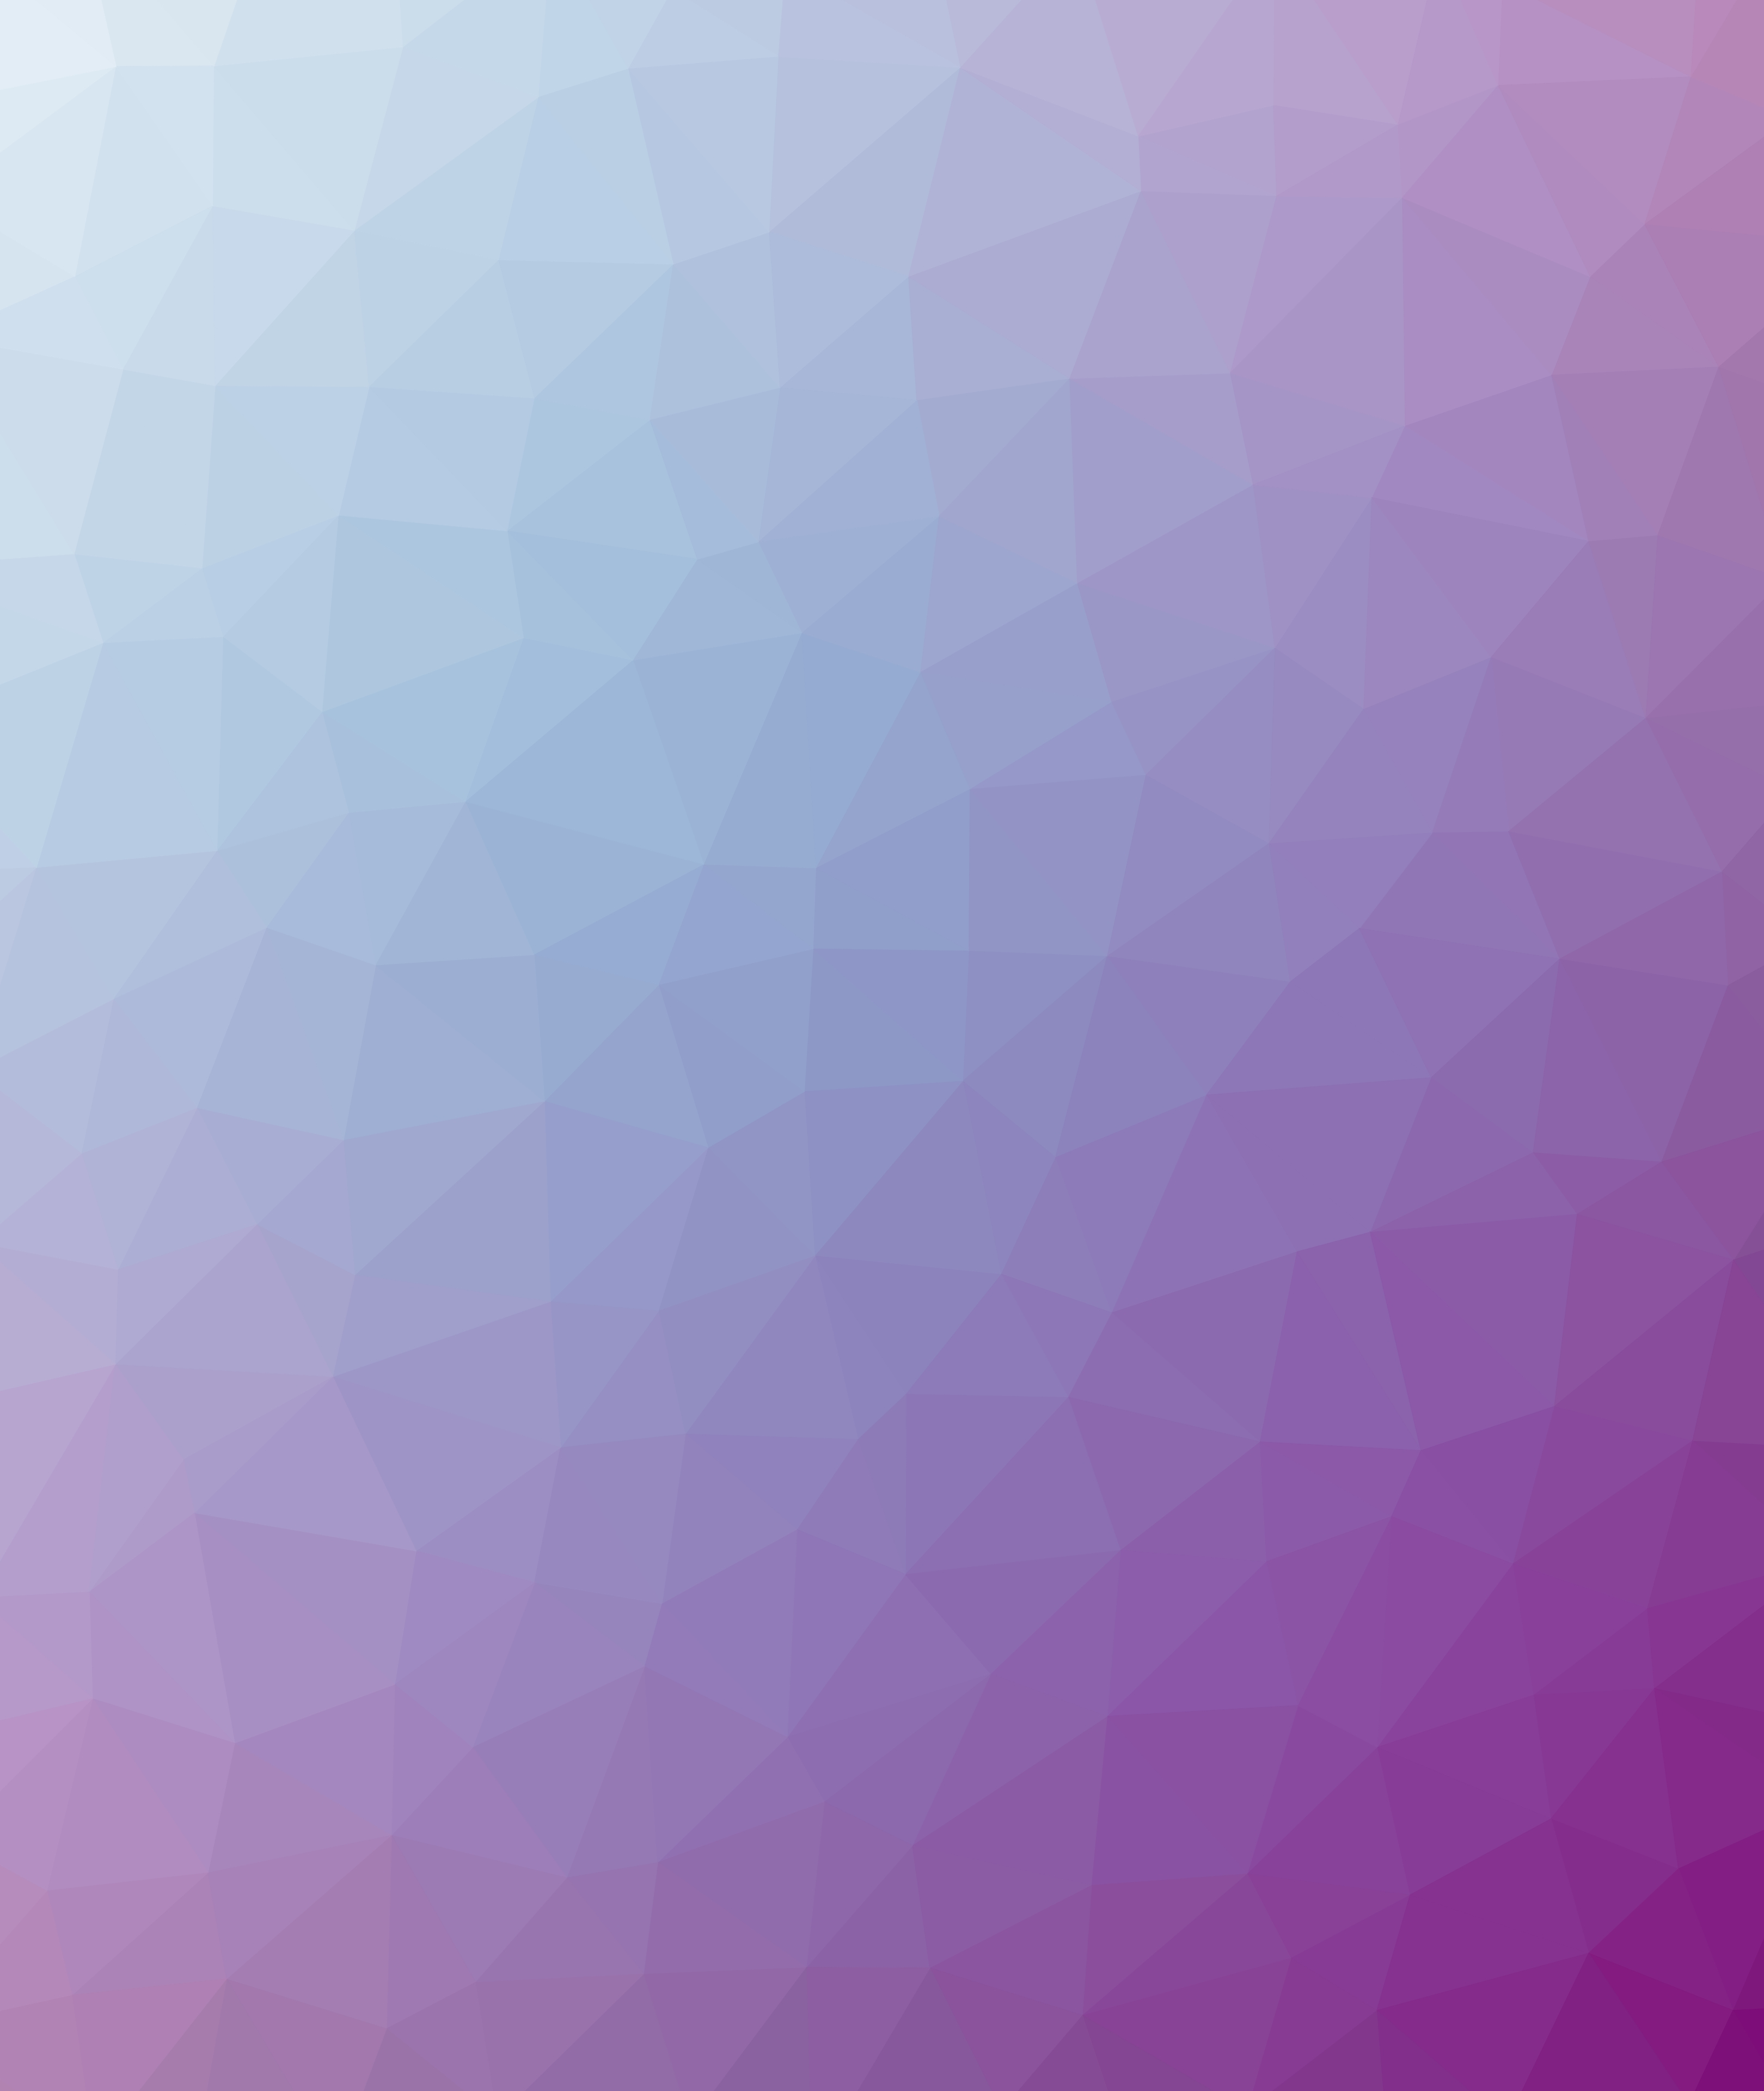 101336 download wallpaper Textures, Texture, Polygon, Gradient, Convex, Triangles, Polygons, Lilac screensavers and pictures for free